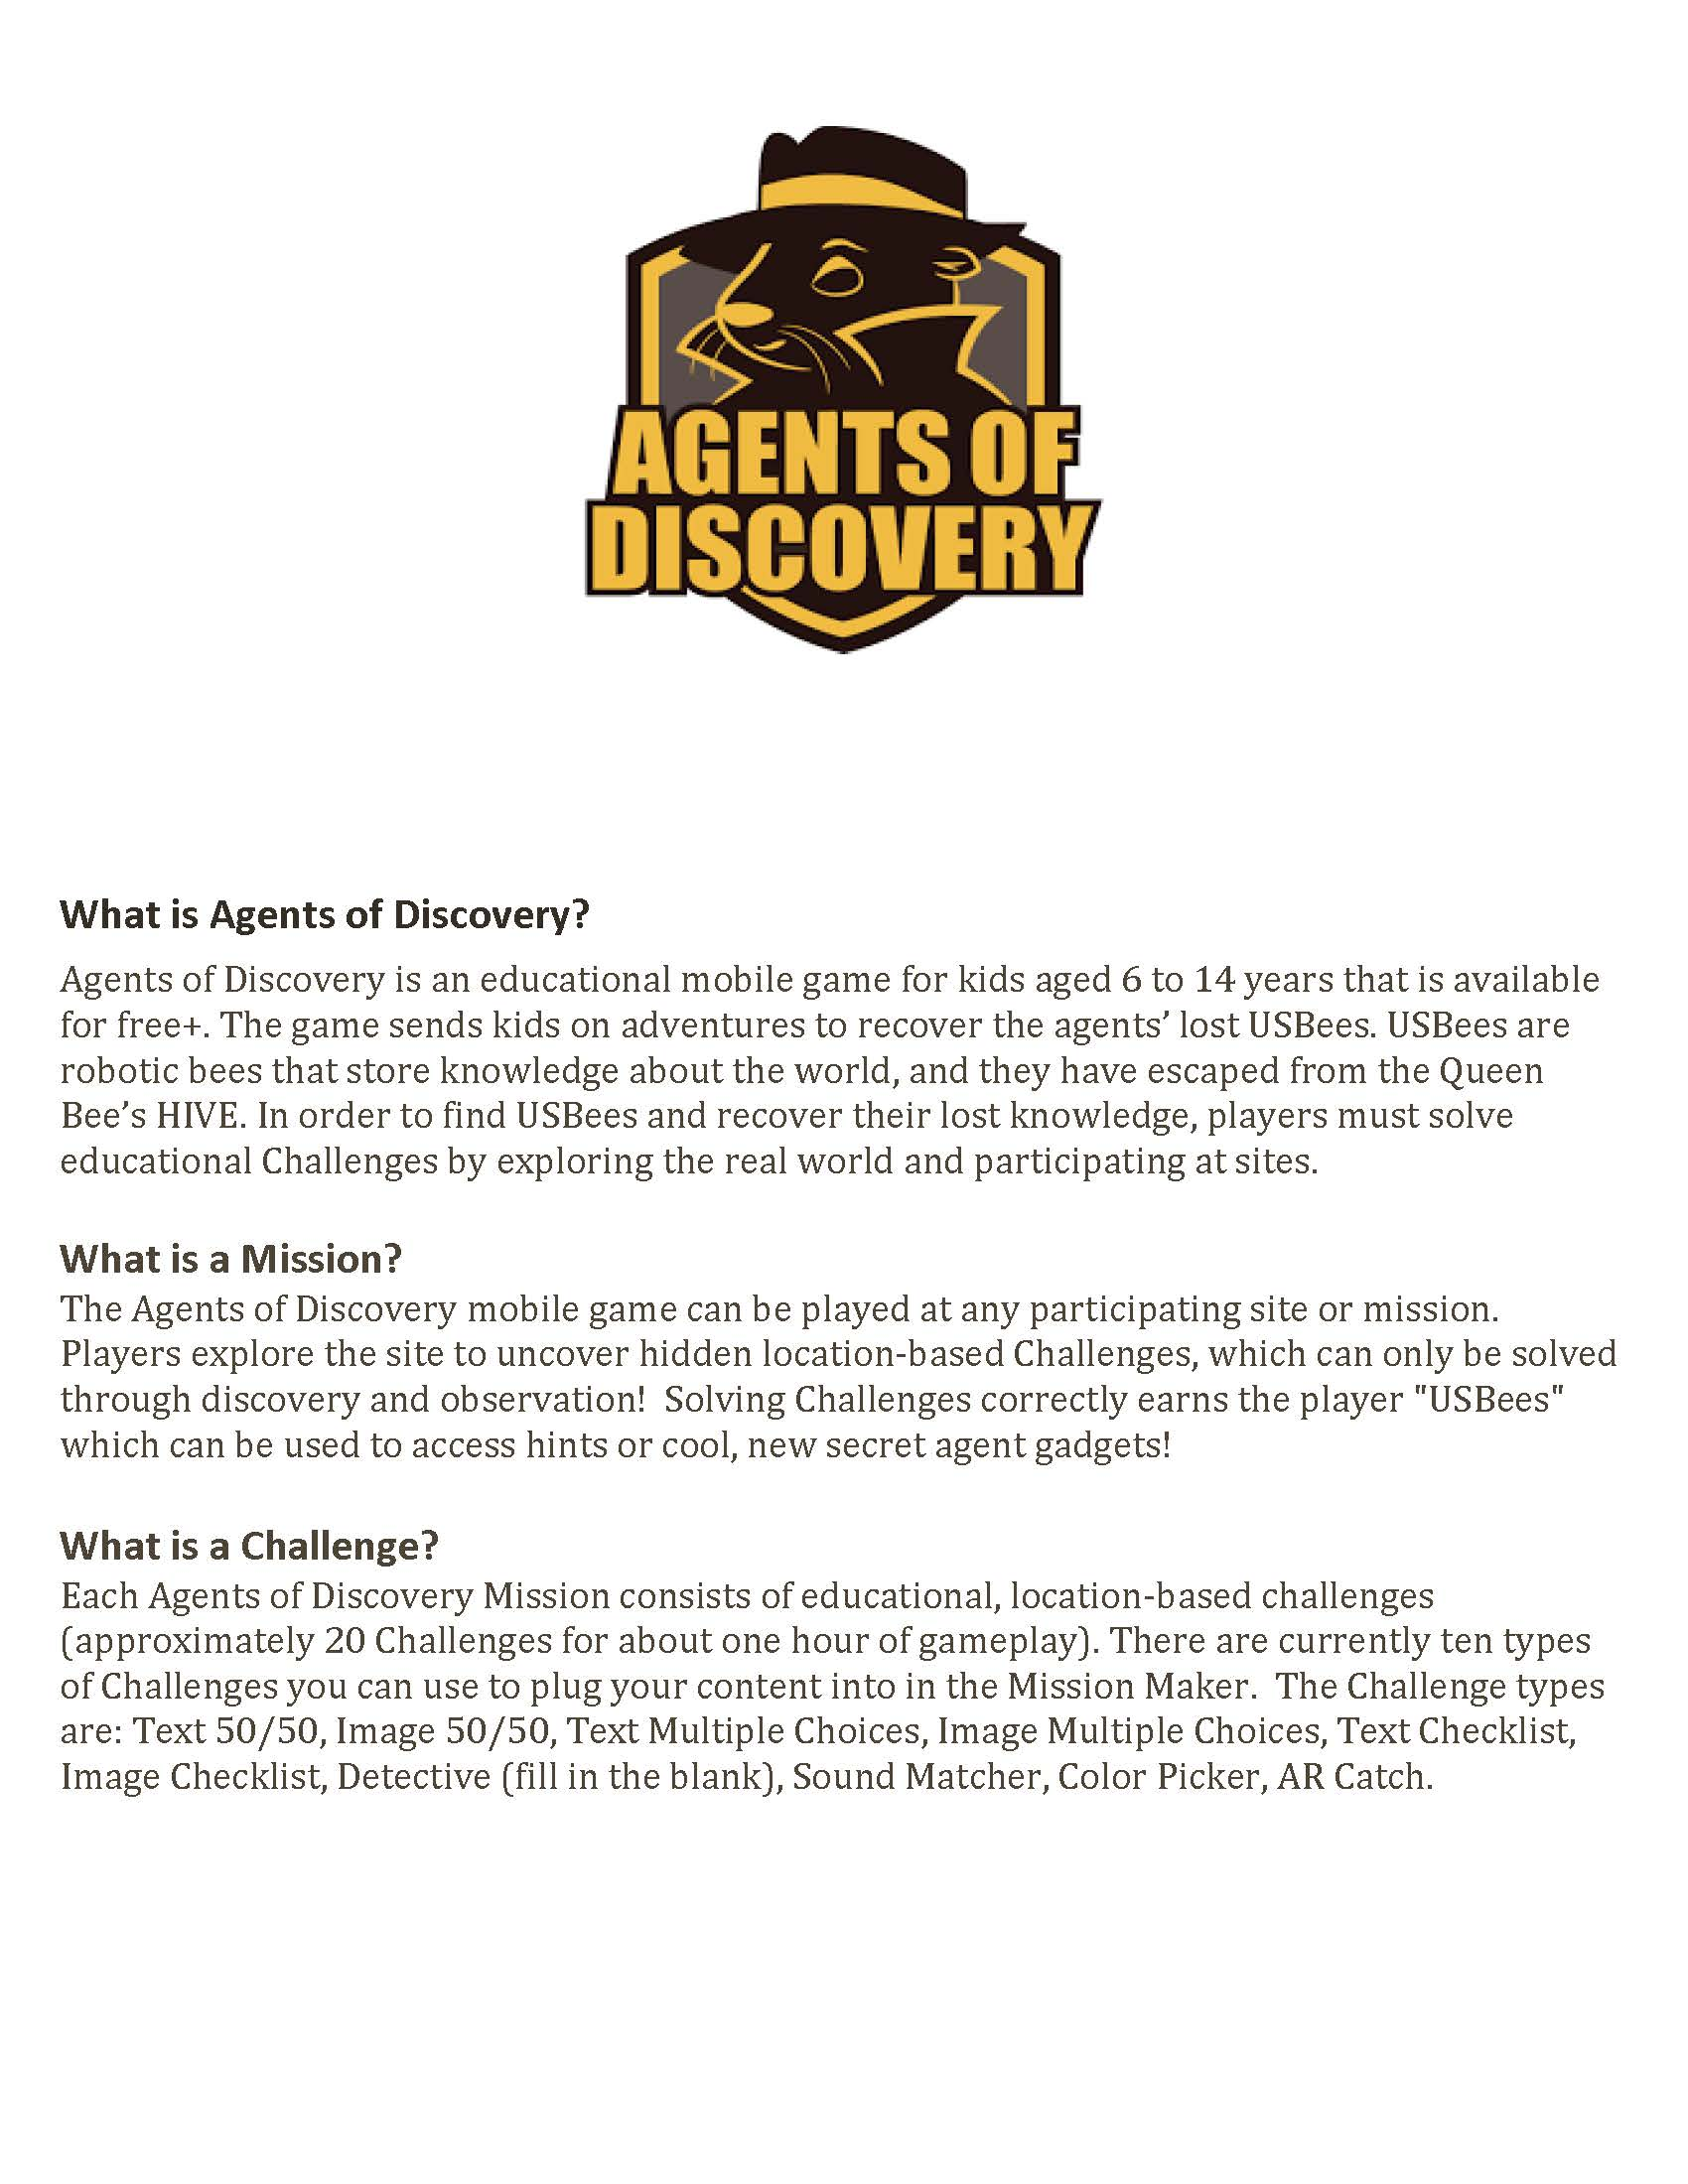 AGENTS OF DISCOVERY_INFO